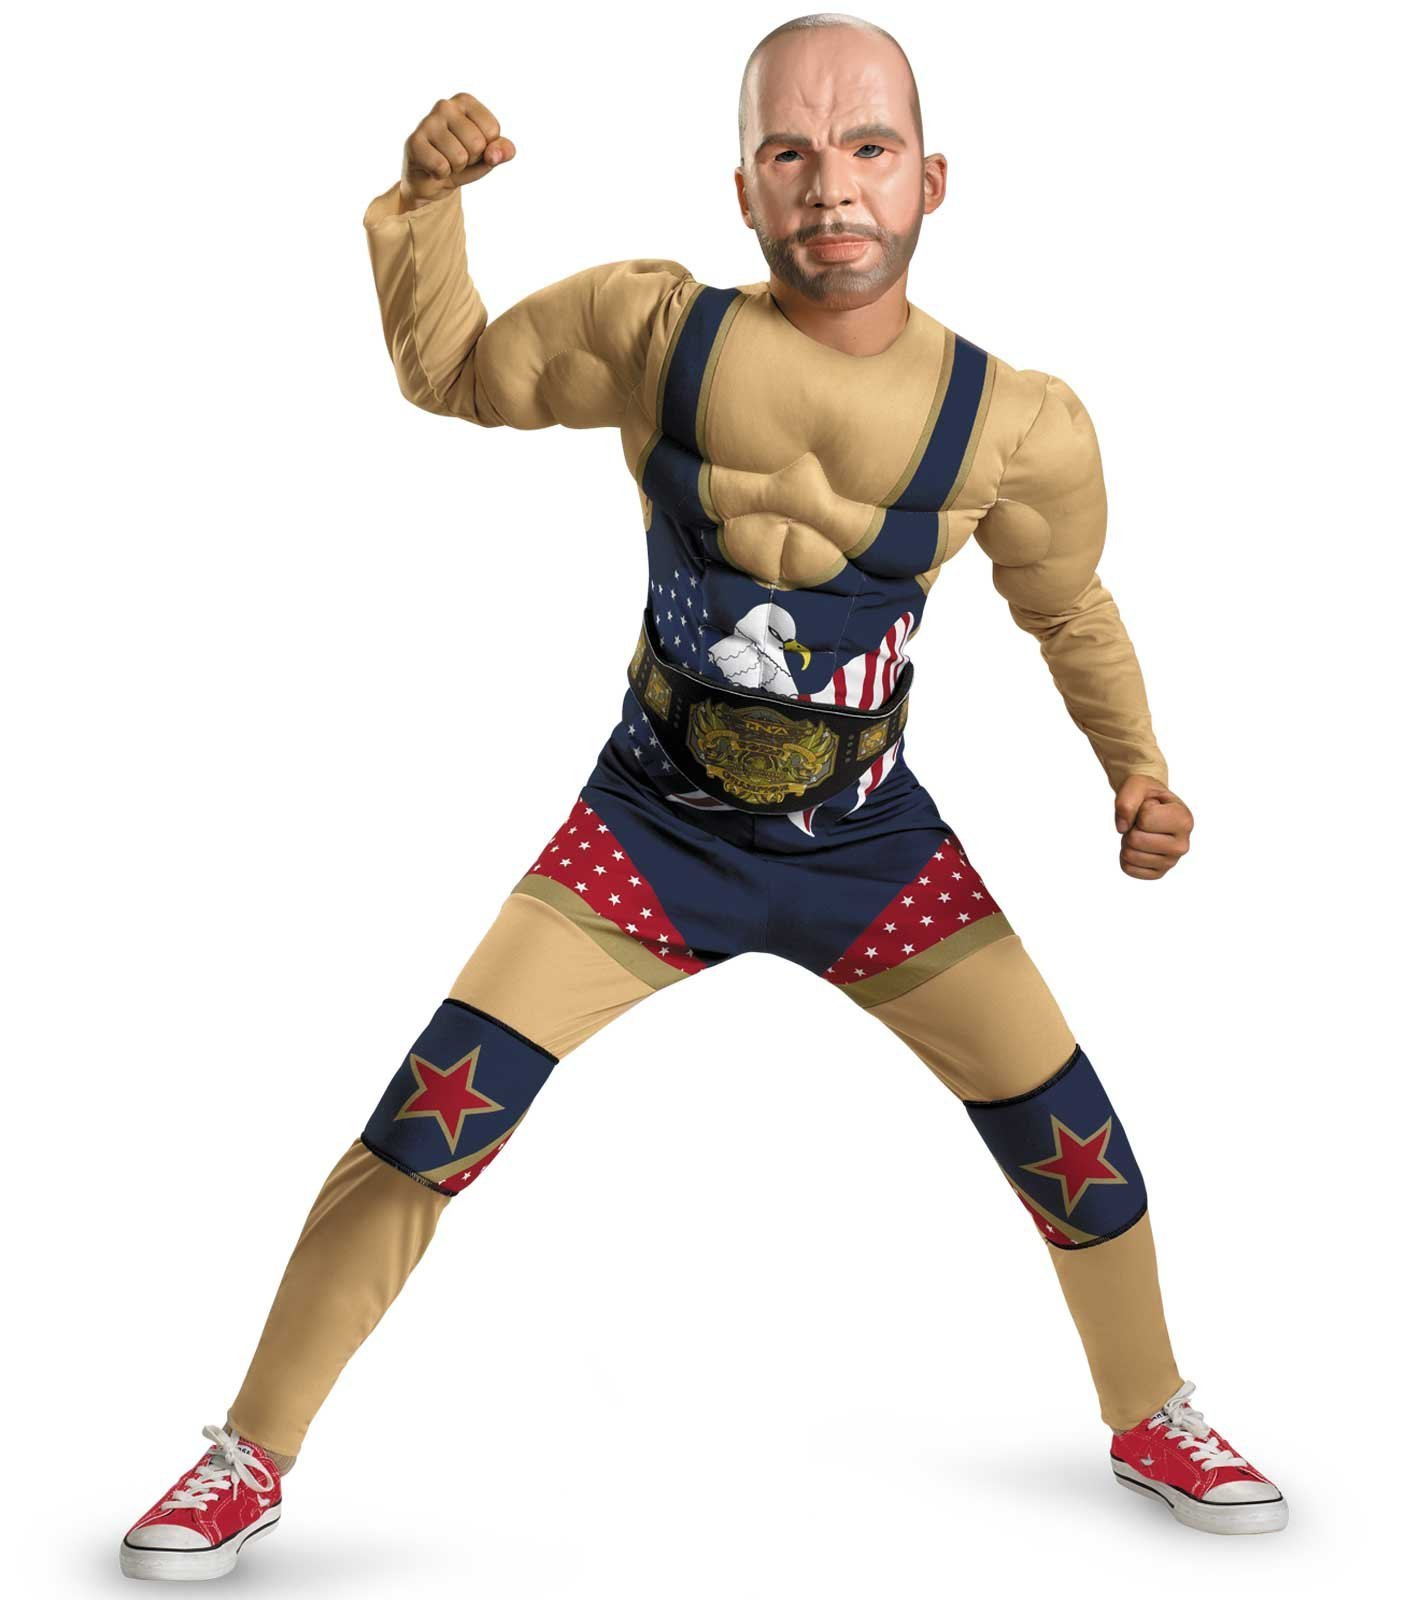 Tna Impact Wrestling Kurt Angle Classic Muscle Costume, Tan/Red/White/Blue, Medium by Disguise